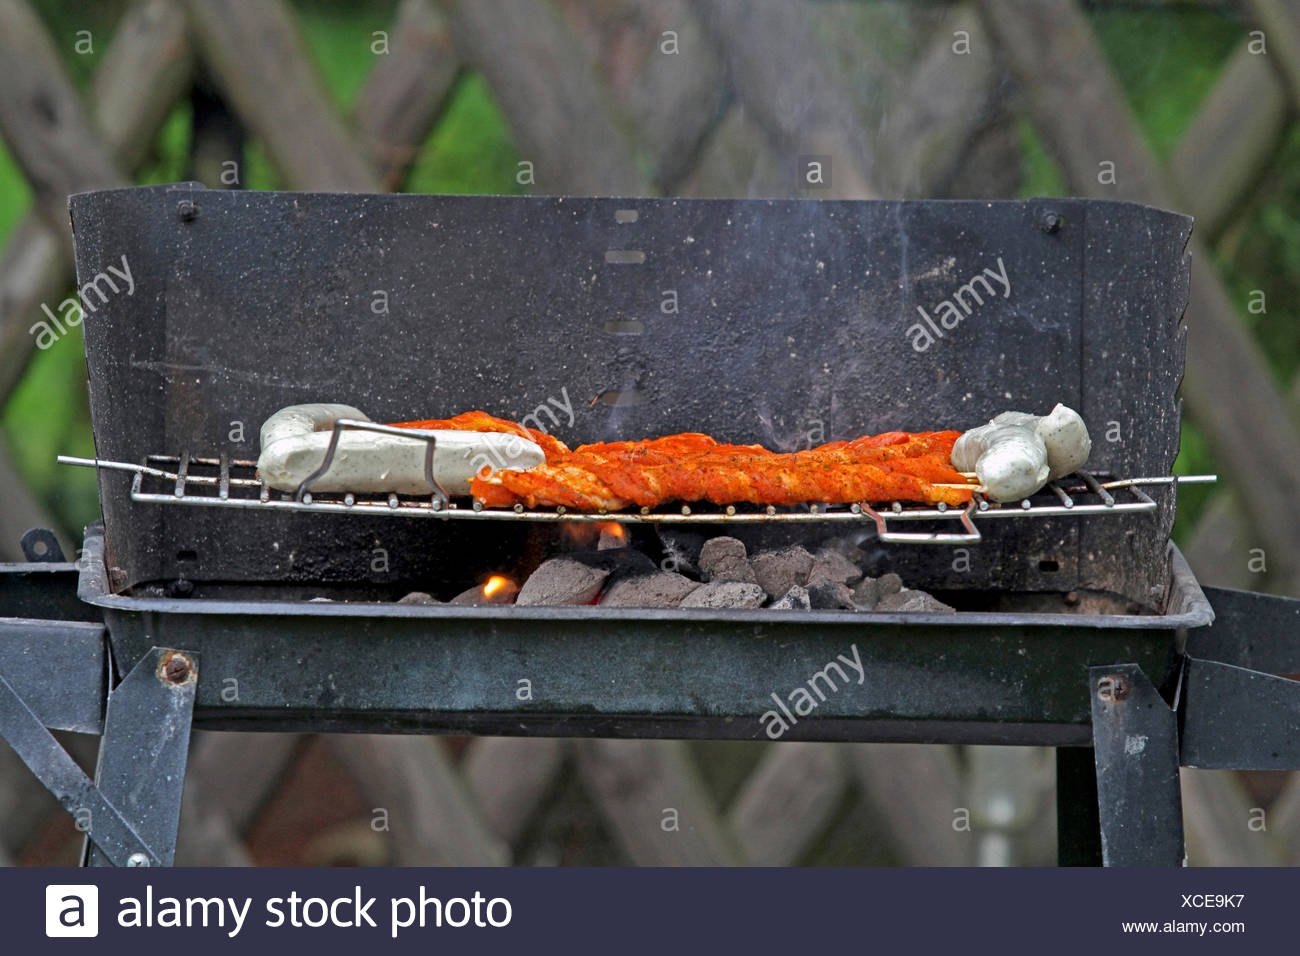 grill meat on a customary charcoal grill, Germany - Stock Image